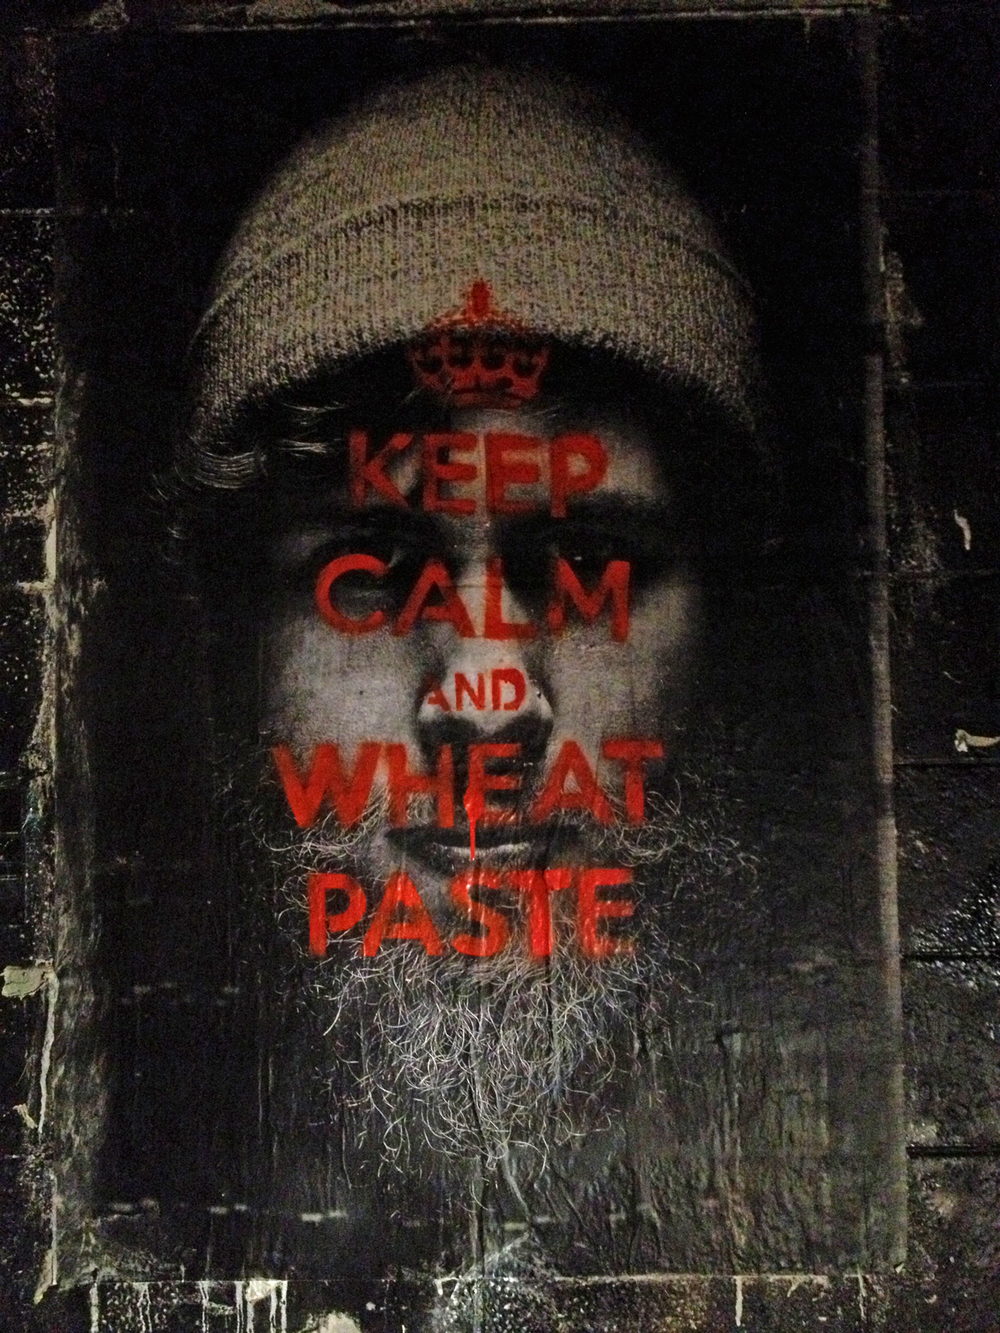 Photo of Wheat Paste in Denver (E Ronshaugen)